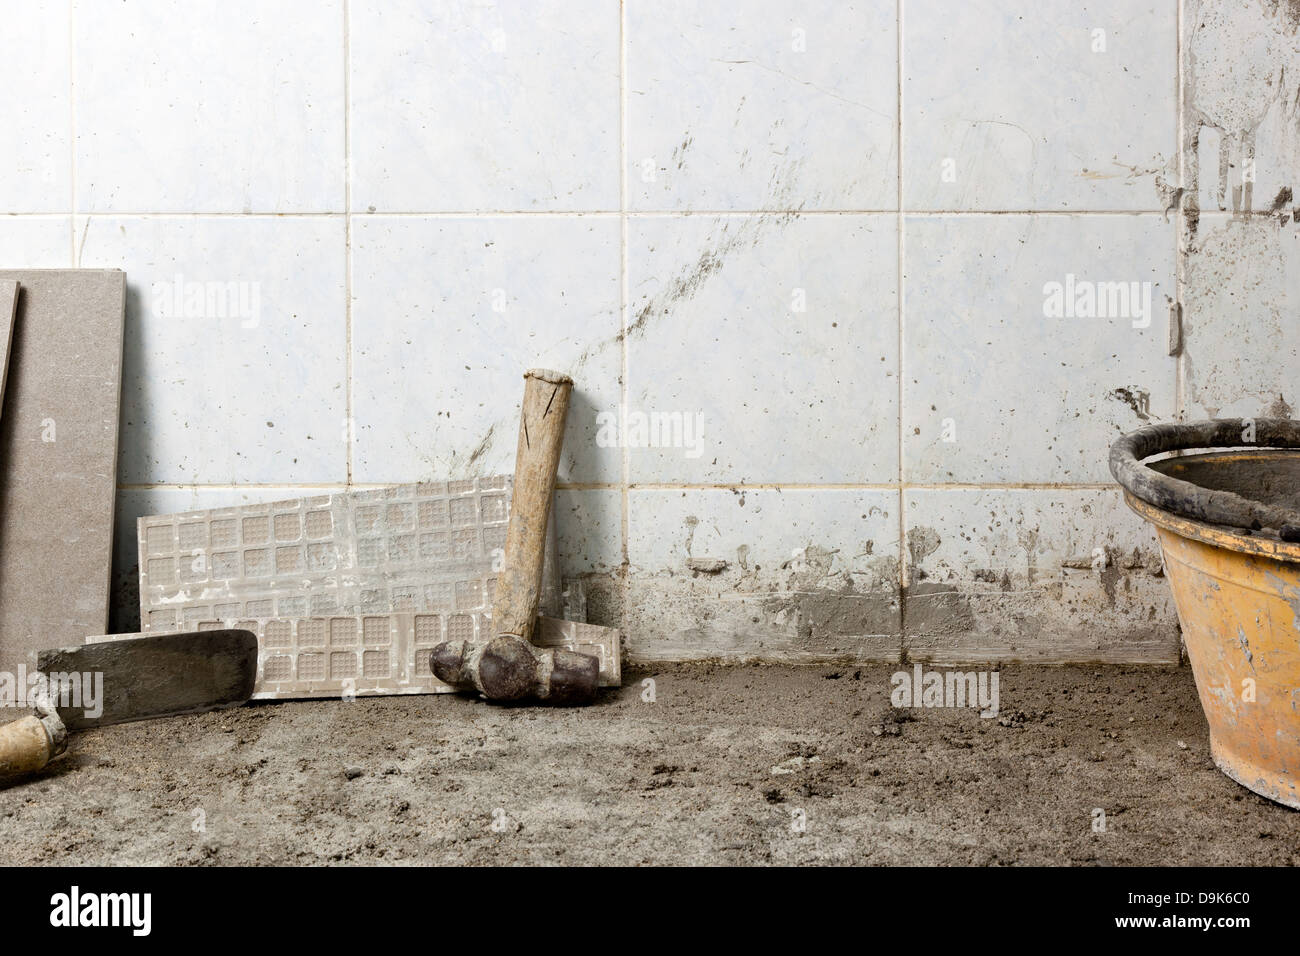 Section of the floor of a house under renovation showing the concrete subfloor and some tools - Stock Image